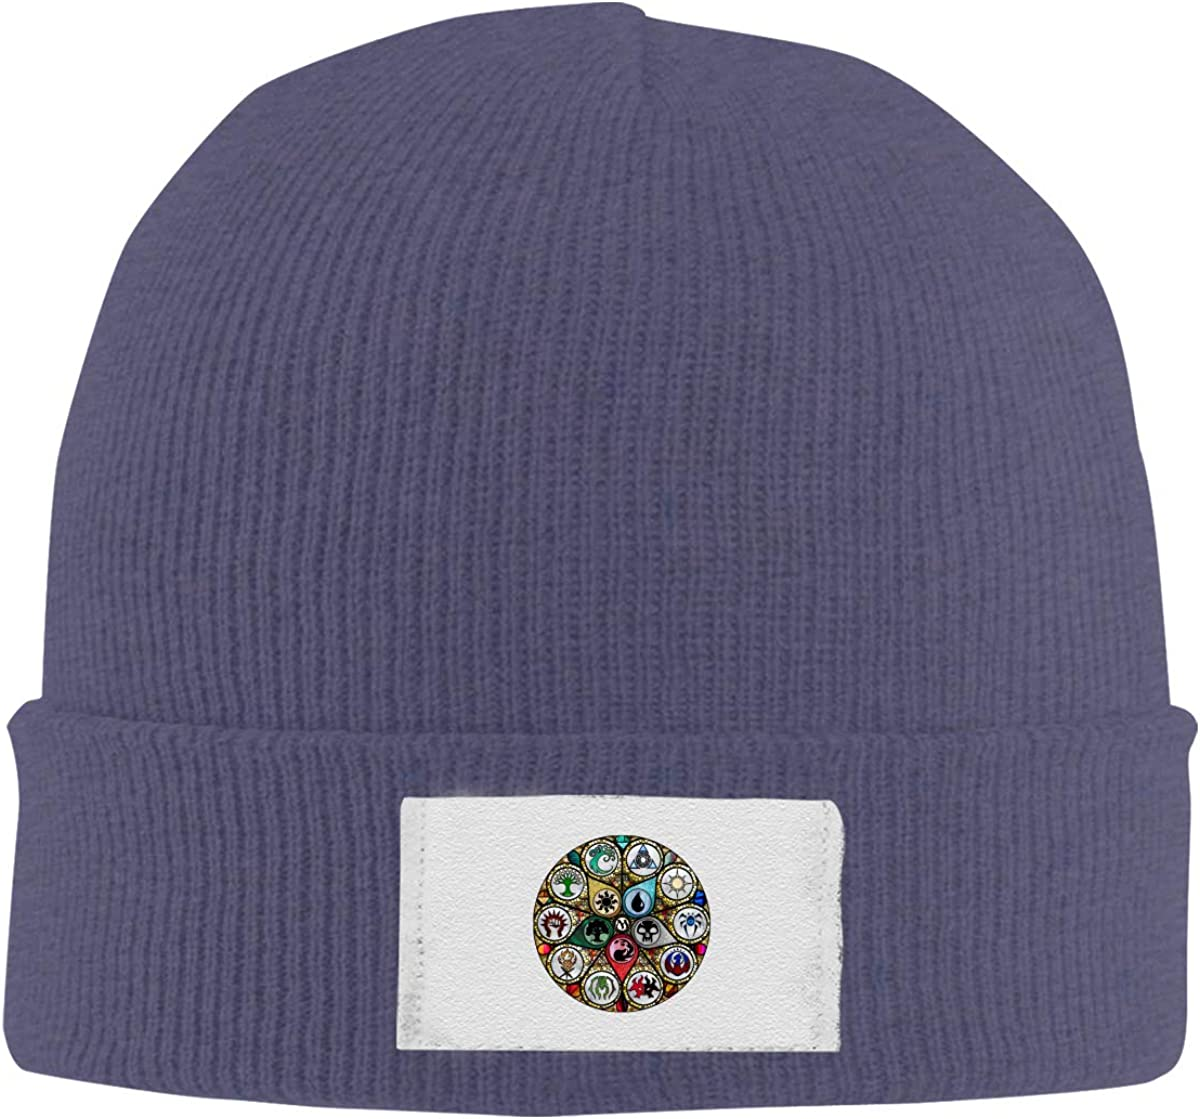 Dunpaiaa Skull Caps MTG Stained Glass Winter Warm Knit Hats Stretchy Cuff Beanie Hat Black